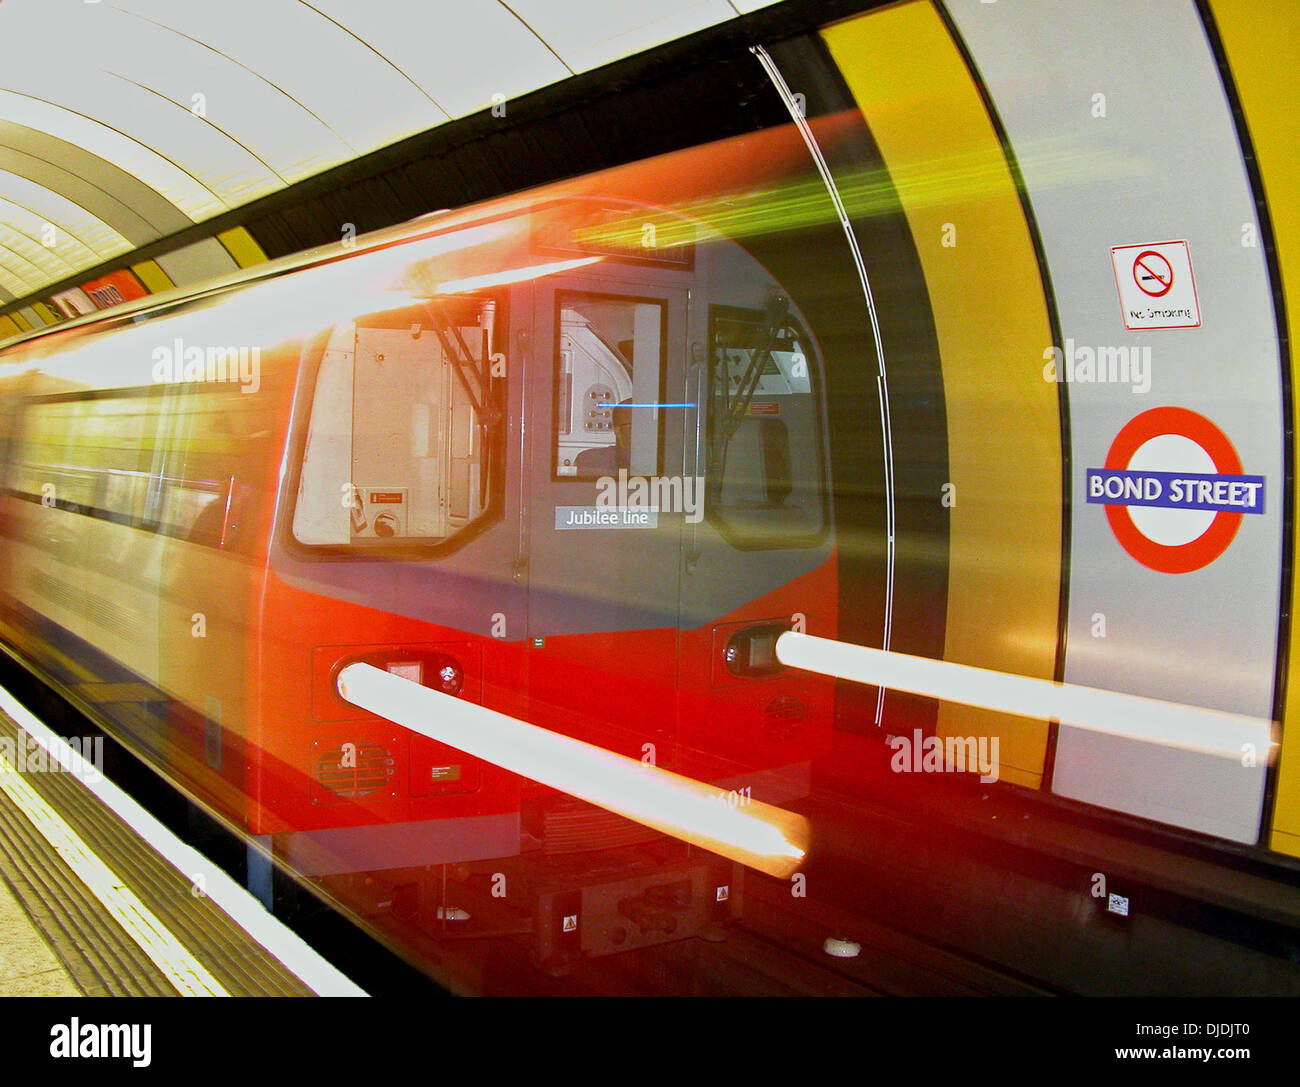 Subway on the Jubilee Line in London England pulling into the Bond Street tube station - Stock Image